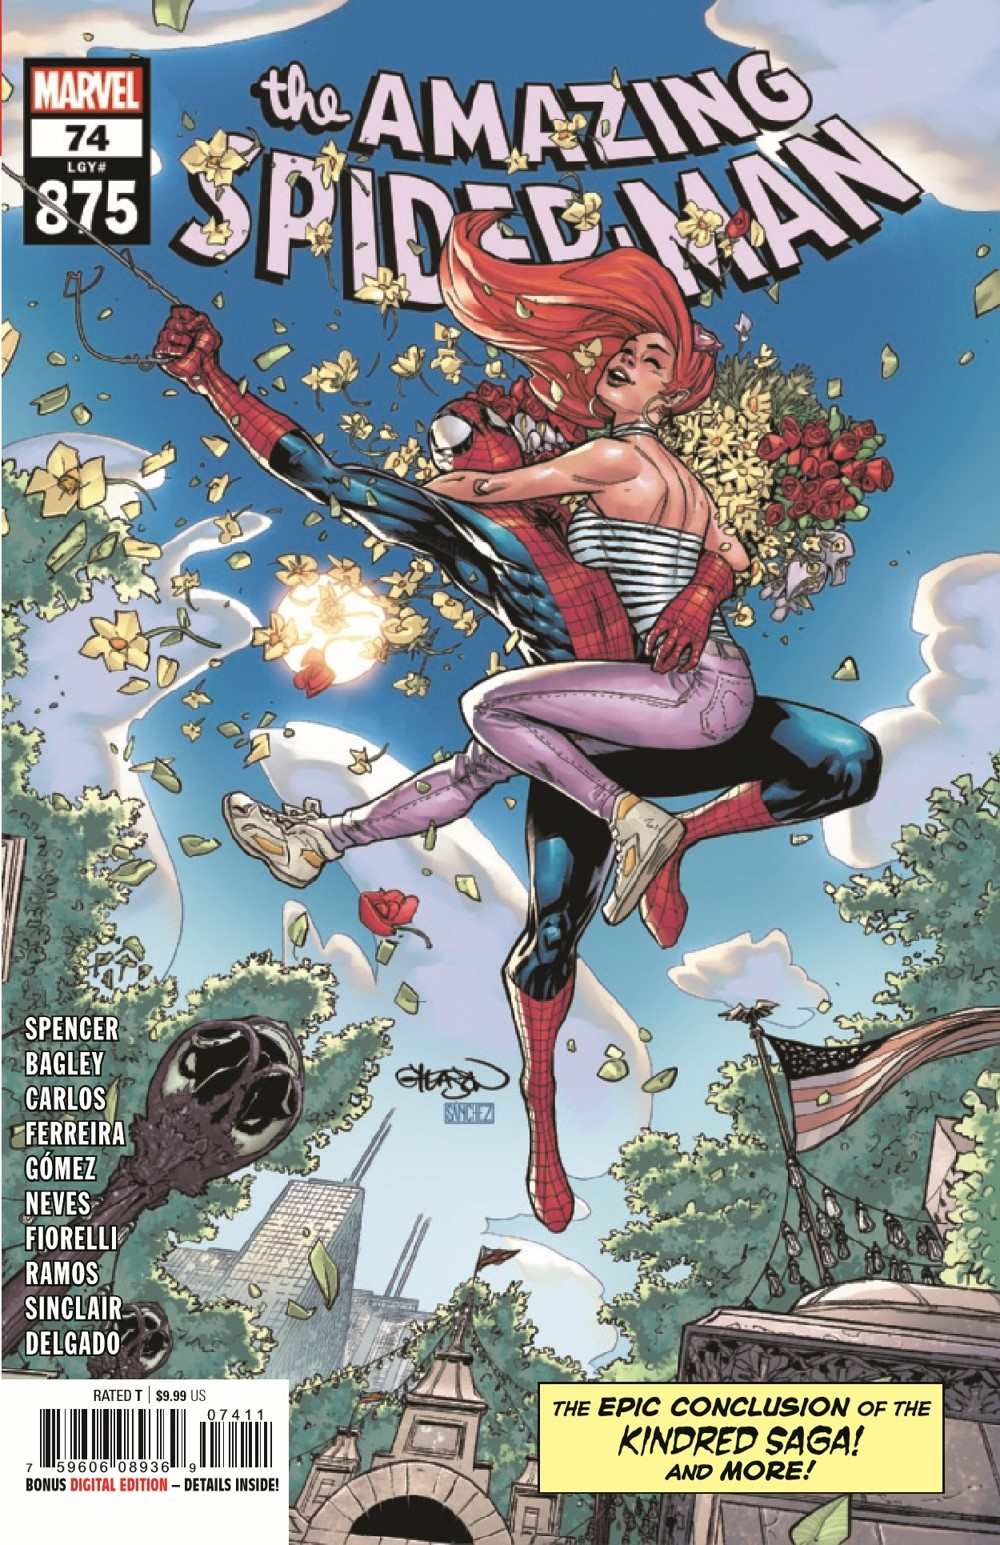 ASM2018074_Preview-1 ComicList Previews: AMAZING SPIDER-MAN #74